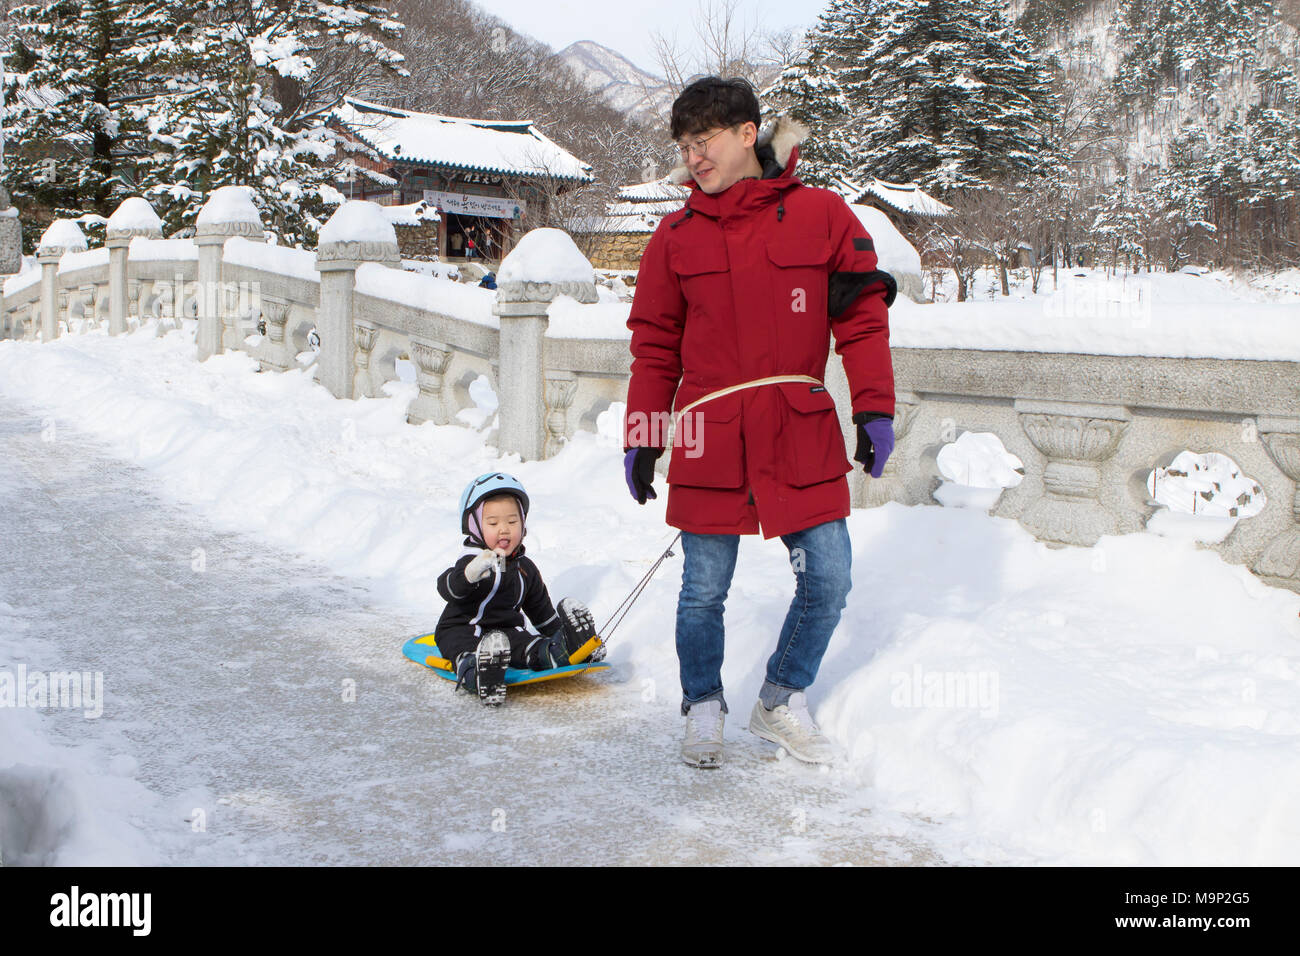 A father is towing his child on a sled over a stone bridge in the snowy forest of Seoraksan National Park, Gangwon-do, South Korea. In the background a Buddhist temple. Seoraksan is a beautiful and iconic National Park in the mountains near Sokcho in the Gangwon-do region of South Korea. The name refers to Snowy Crags Mountains. Set against the landscape are two Buddhist temples: Sinheung-sa and Beakdam-sa. This region is hosting the winter Olympics in February 2018. - Stock Image